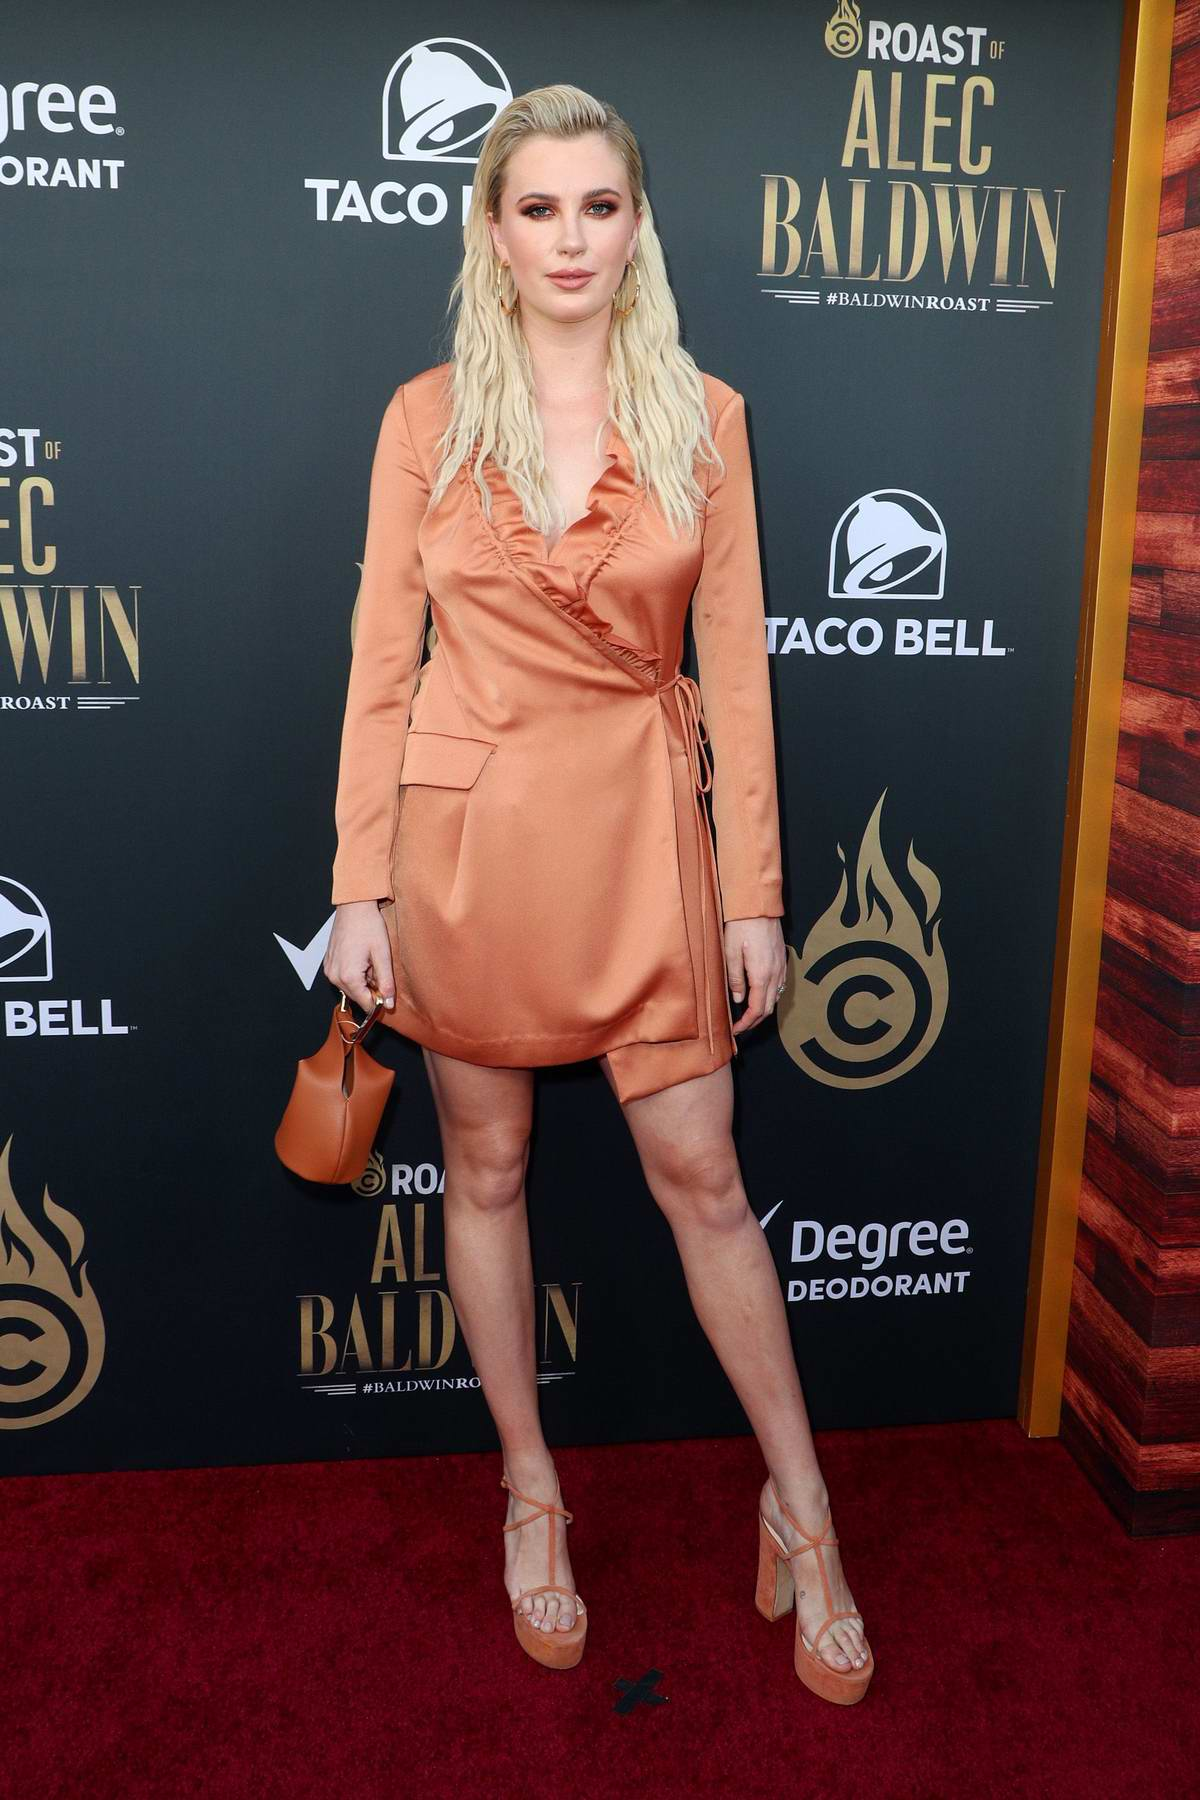 Ireland Baldwin attends the Comedy Central Roast of Alec Baldwin at Saban Theatre in Los Angeles